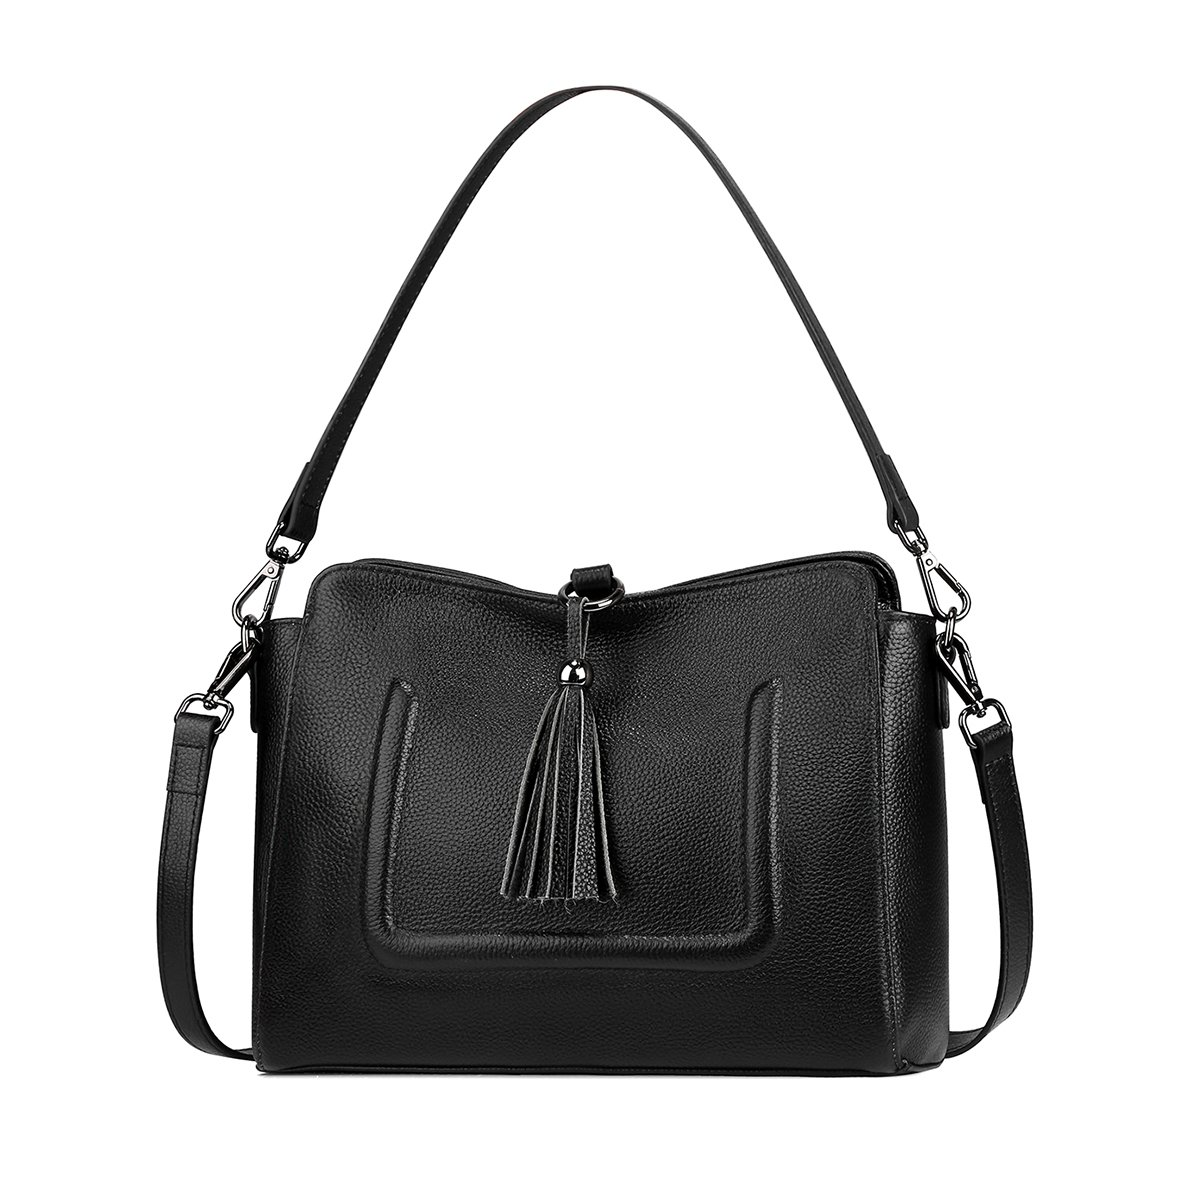 S-ZONE Genuine Leather Women's Crossbody Bag Simple Shoulder Bag with Tassel Satchel Purse (Black)